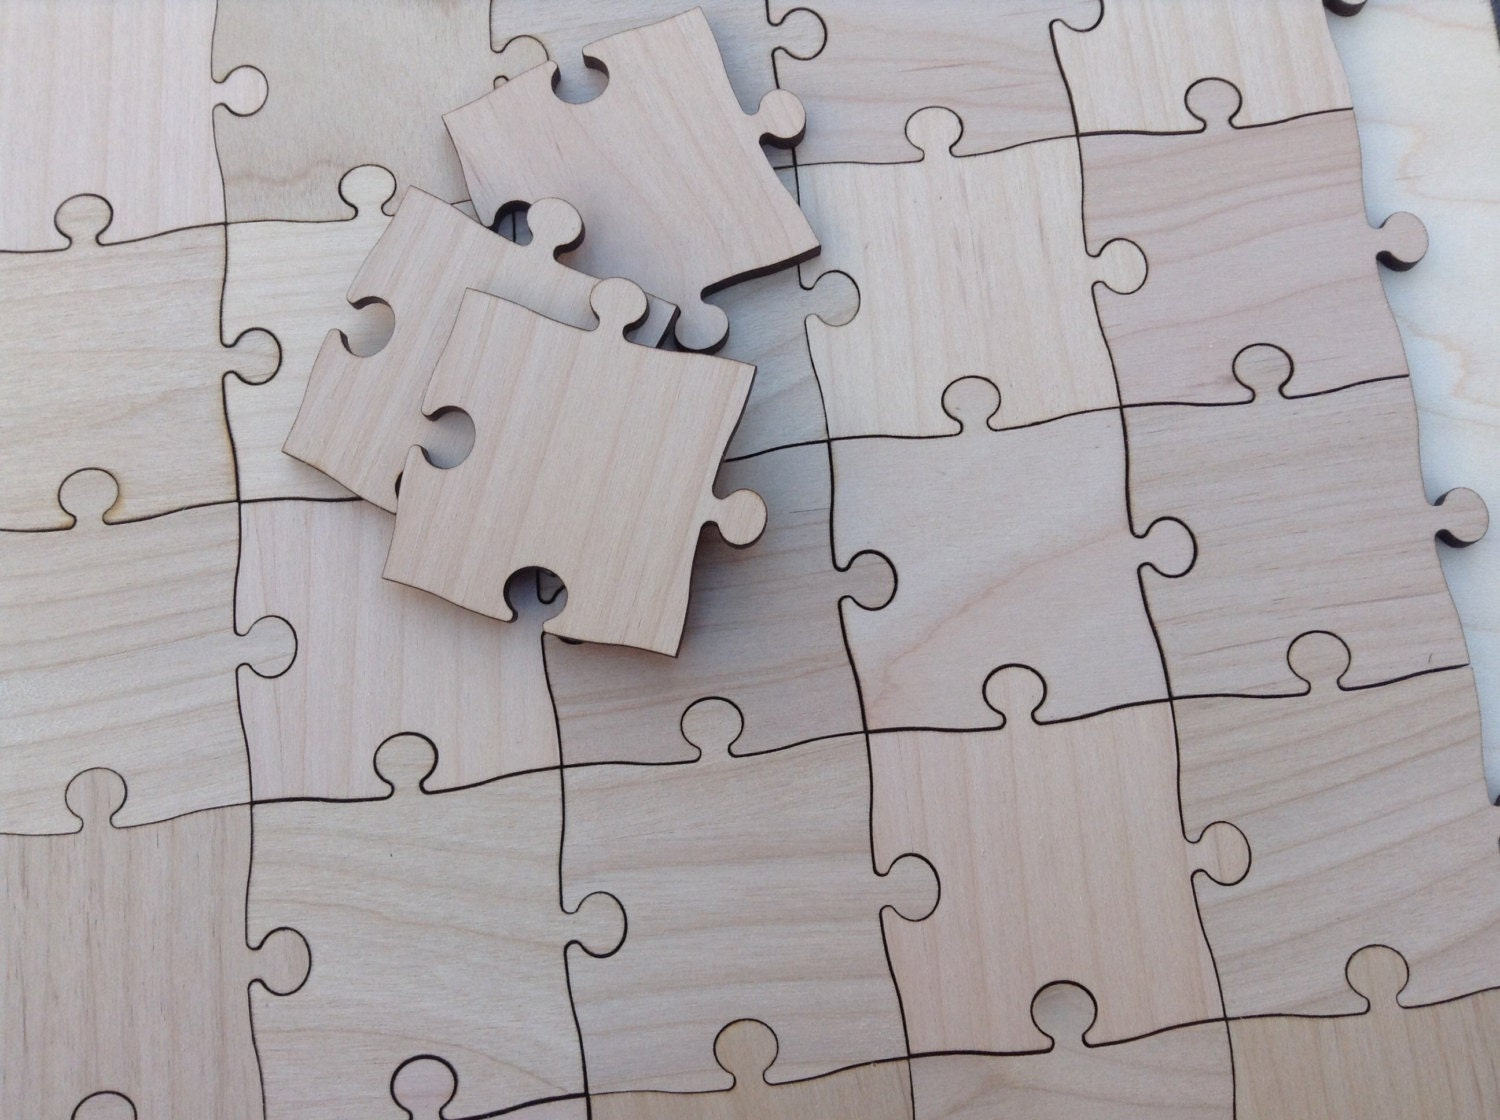 100 large 2 inch blank puzzle pieces wedding guest book for Large blank puzzle pieces template